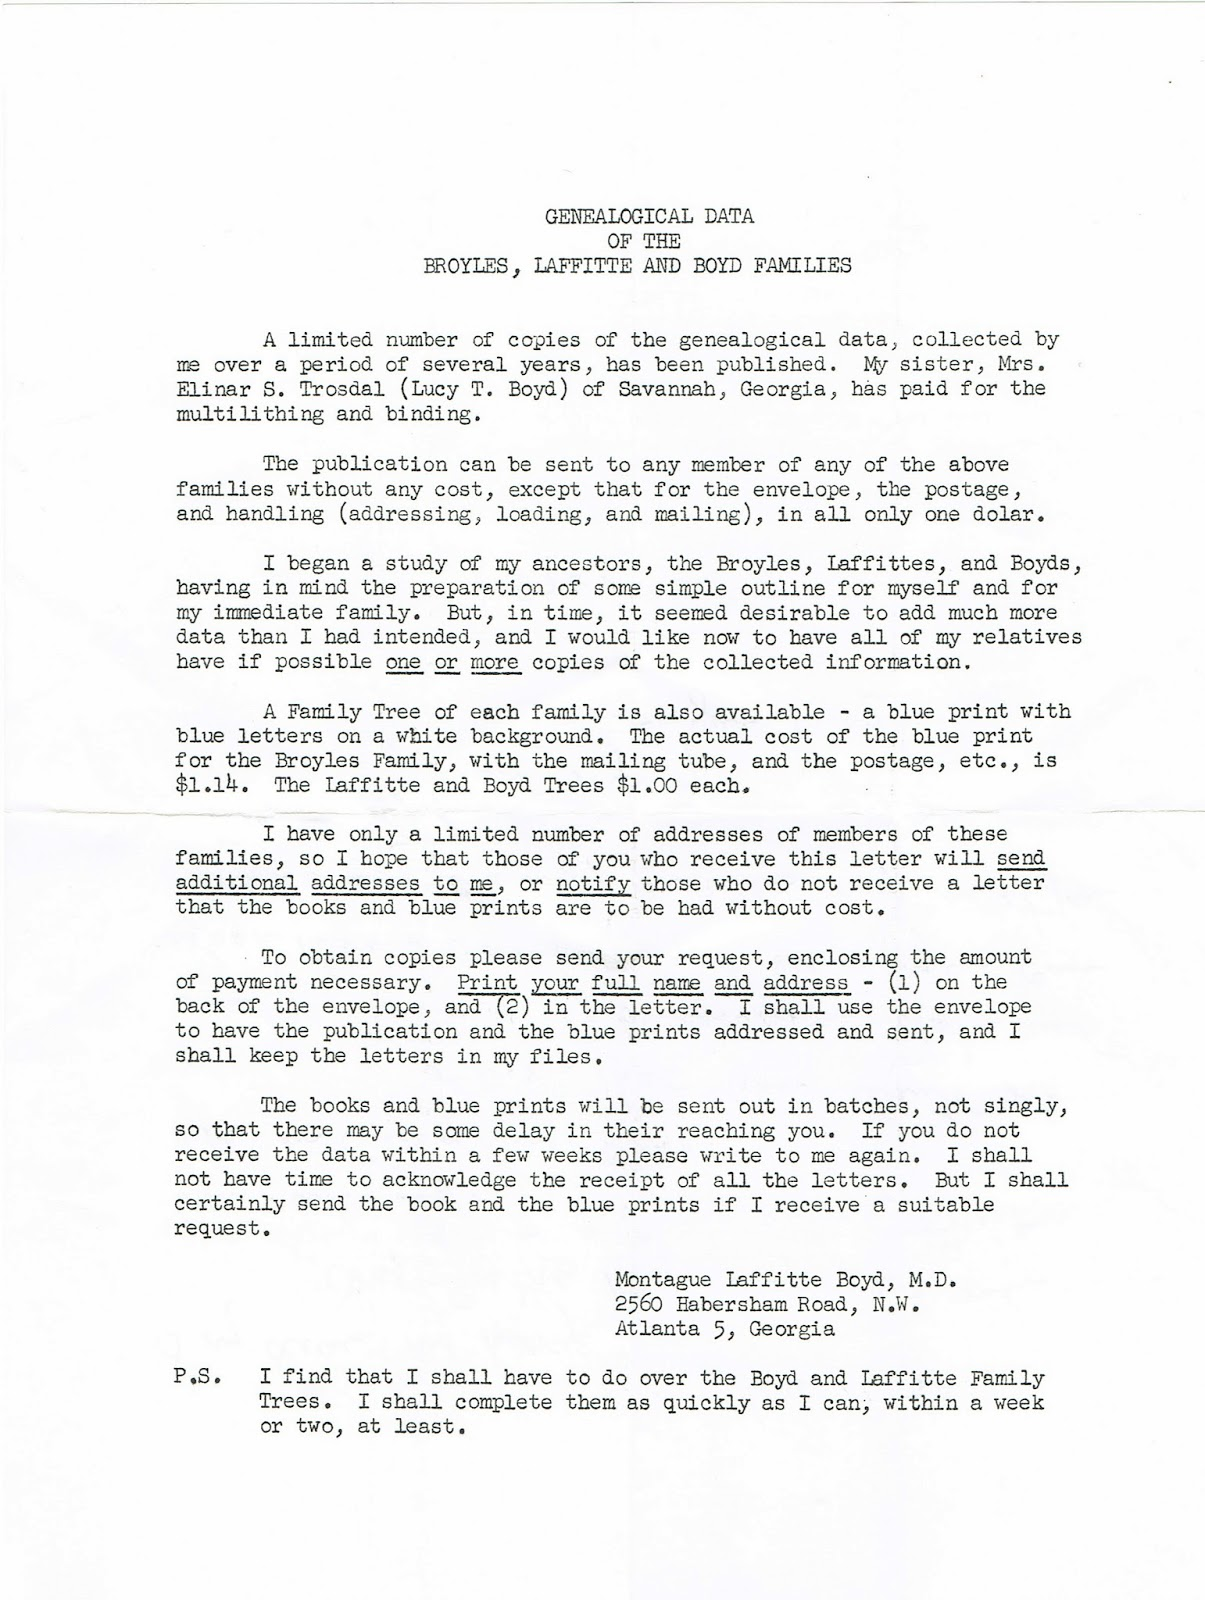 Letter concerning 1959 publication of a book on the Broyles family genealogy